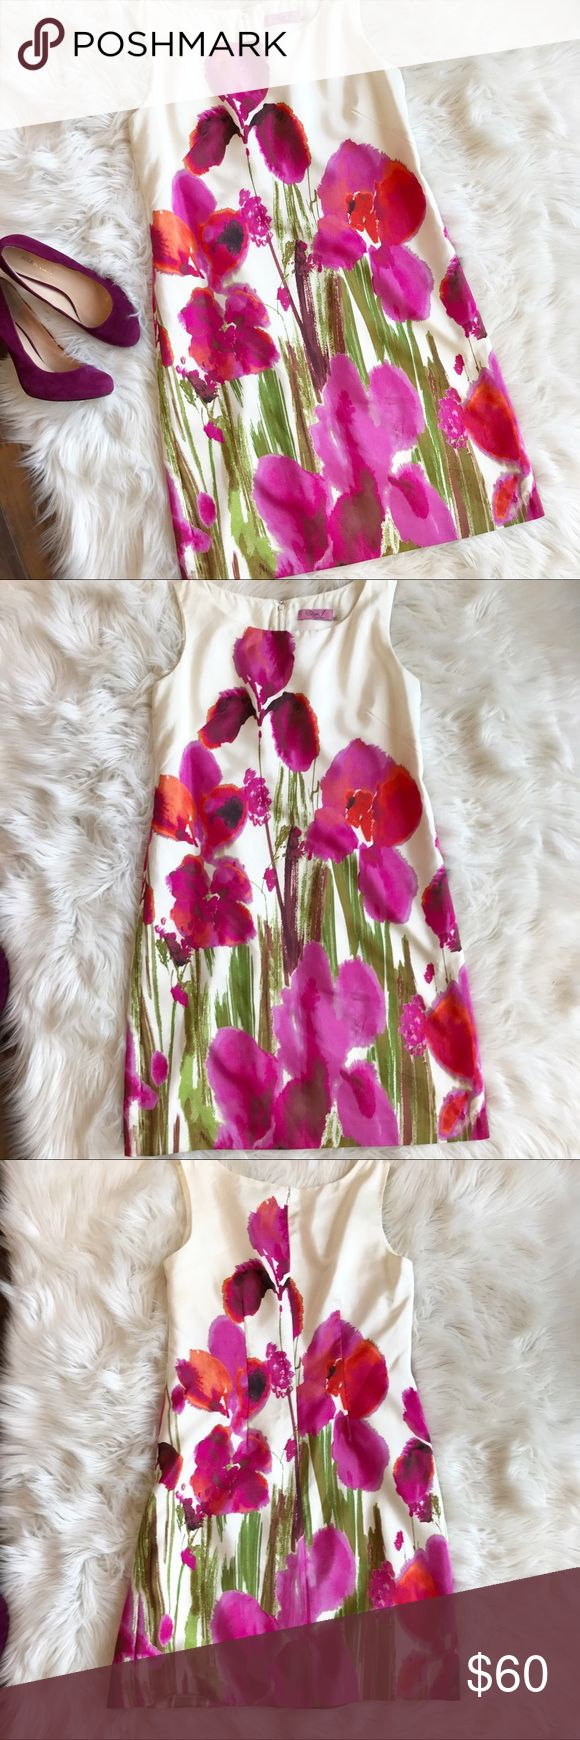 Eliza J Sleeveless Watercolor Floral Dress Gorgeous floral Watercolor dress by Eliza J. In excellent used condition. Vibrant and bright Watercolor Floral pattern. Size 12. Polyester blend. Concealed zipper. Small run in dress, not too noticeable when worn though. Measurements to come. Eliza J Dresses